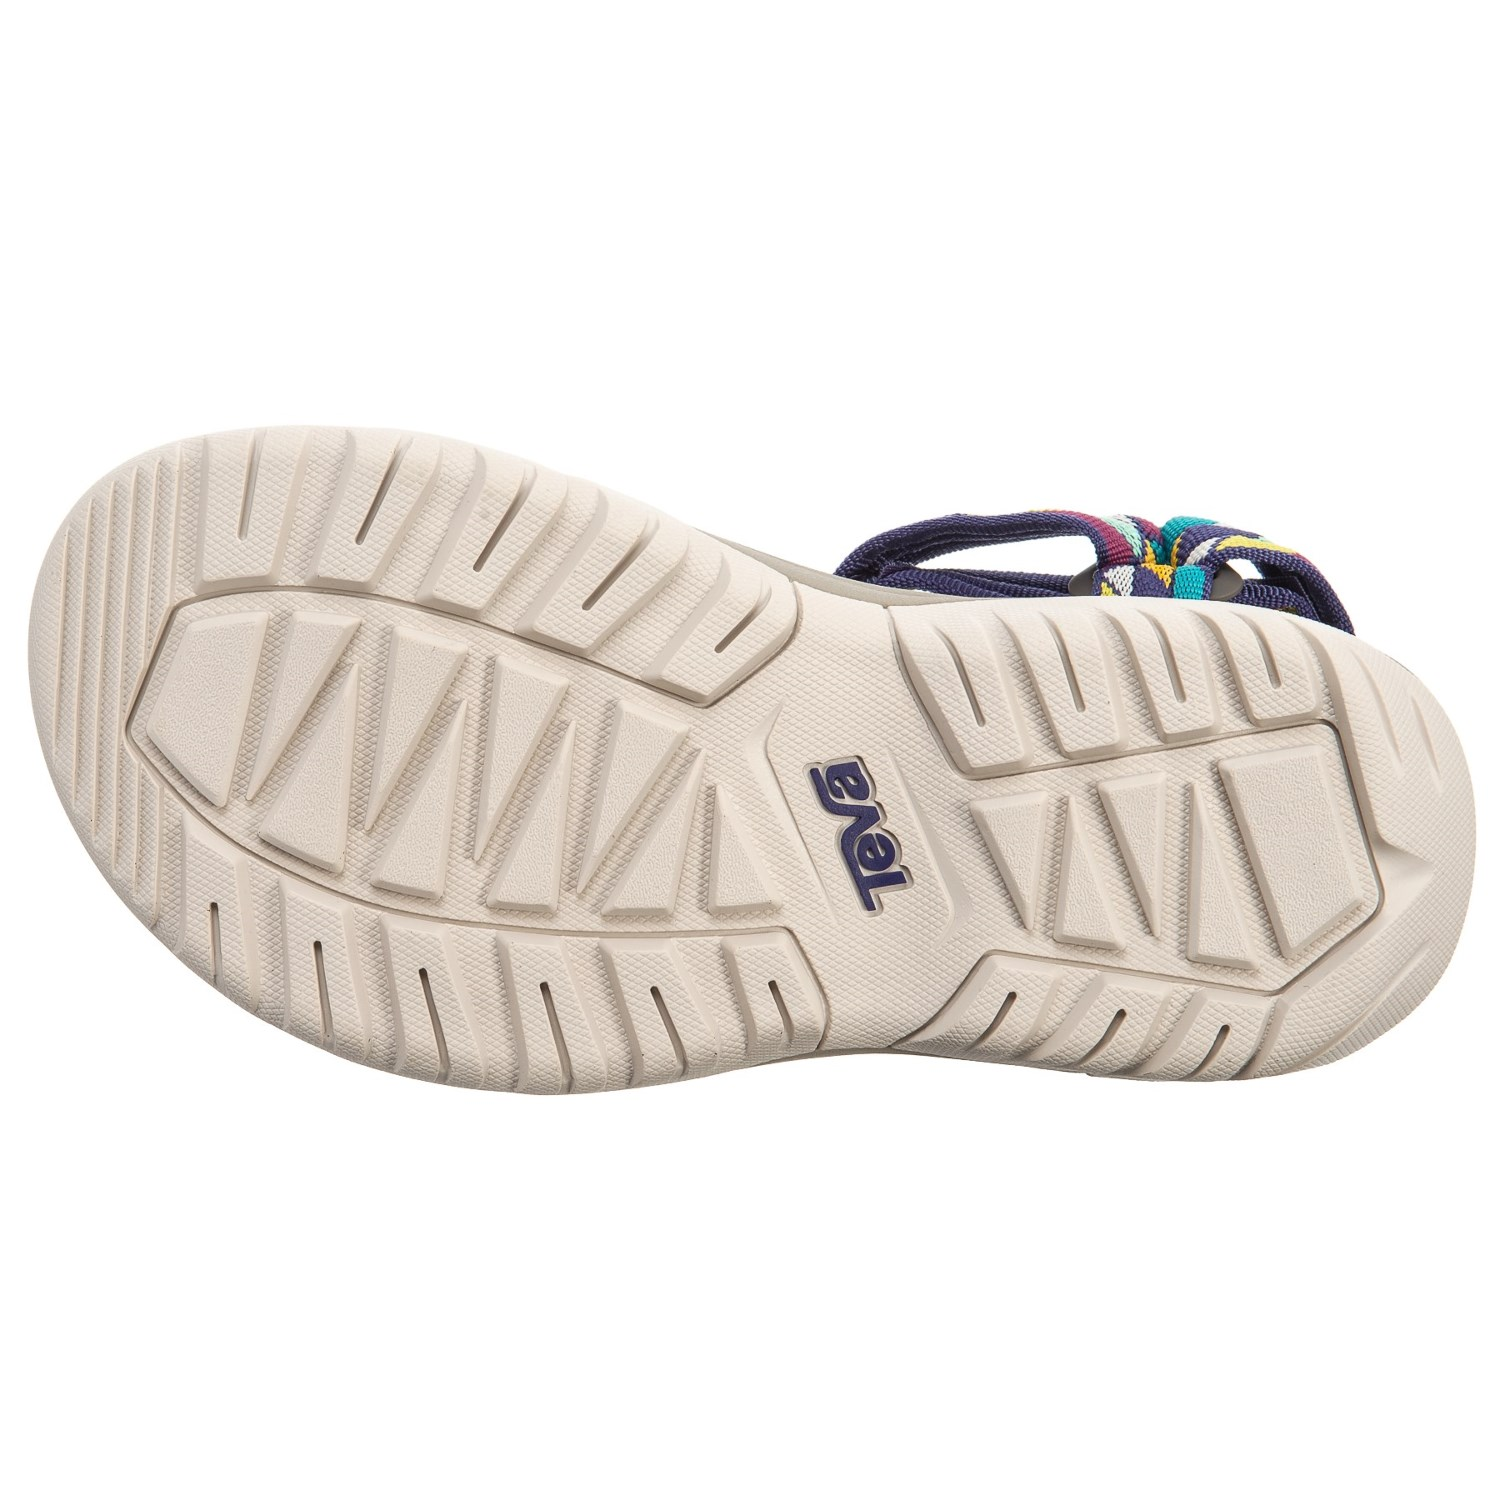 1e045f5a1fd2 Teva Hurricane XLT2 Sport Sandals (For Women) - Save 57%